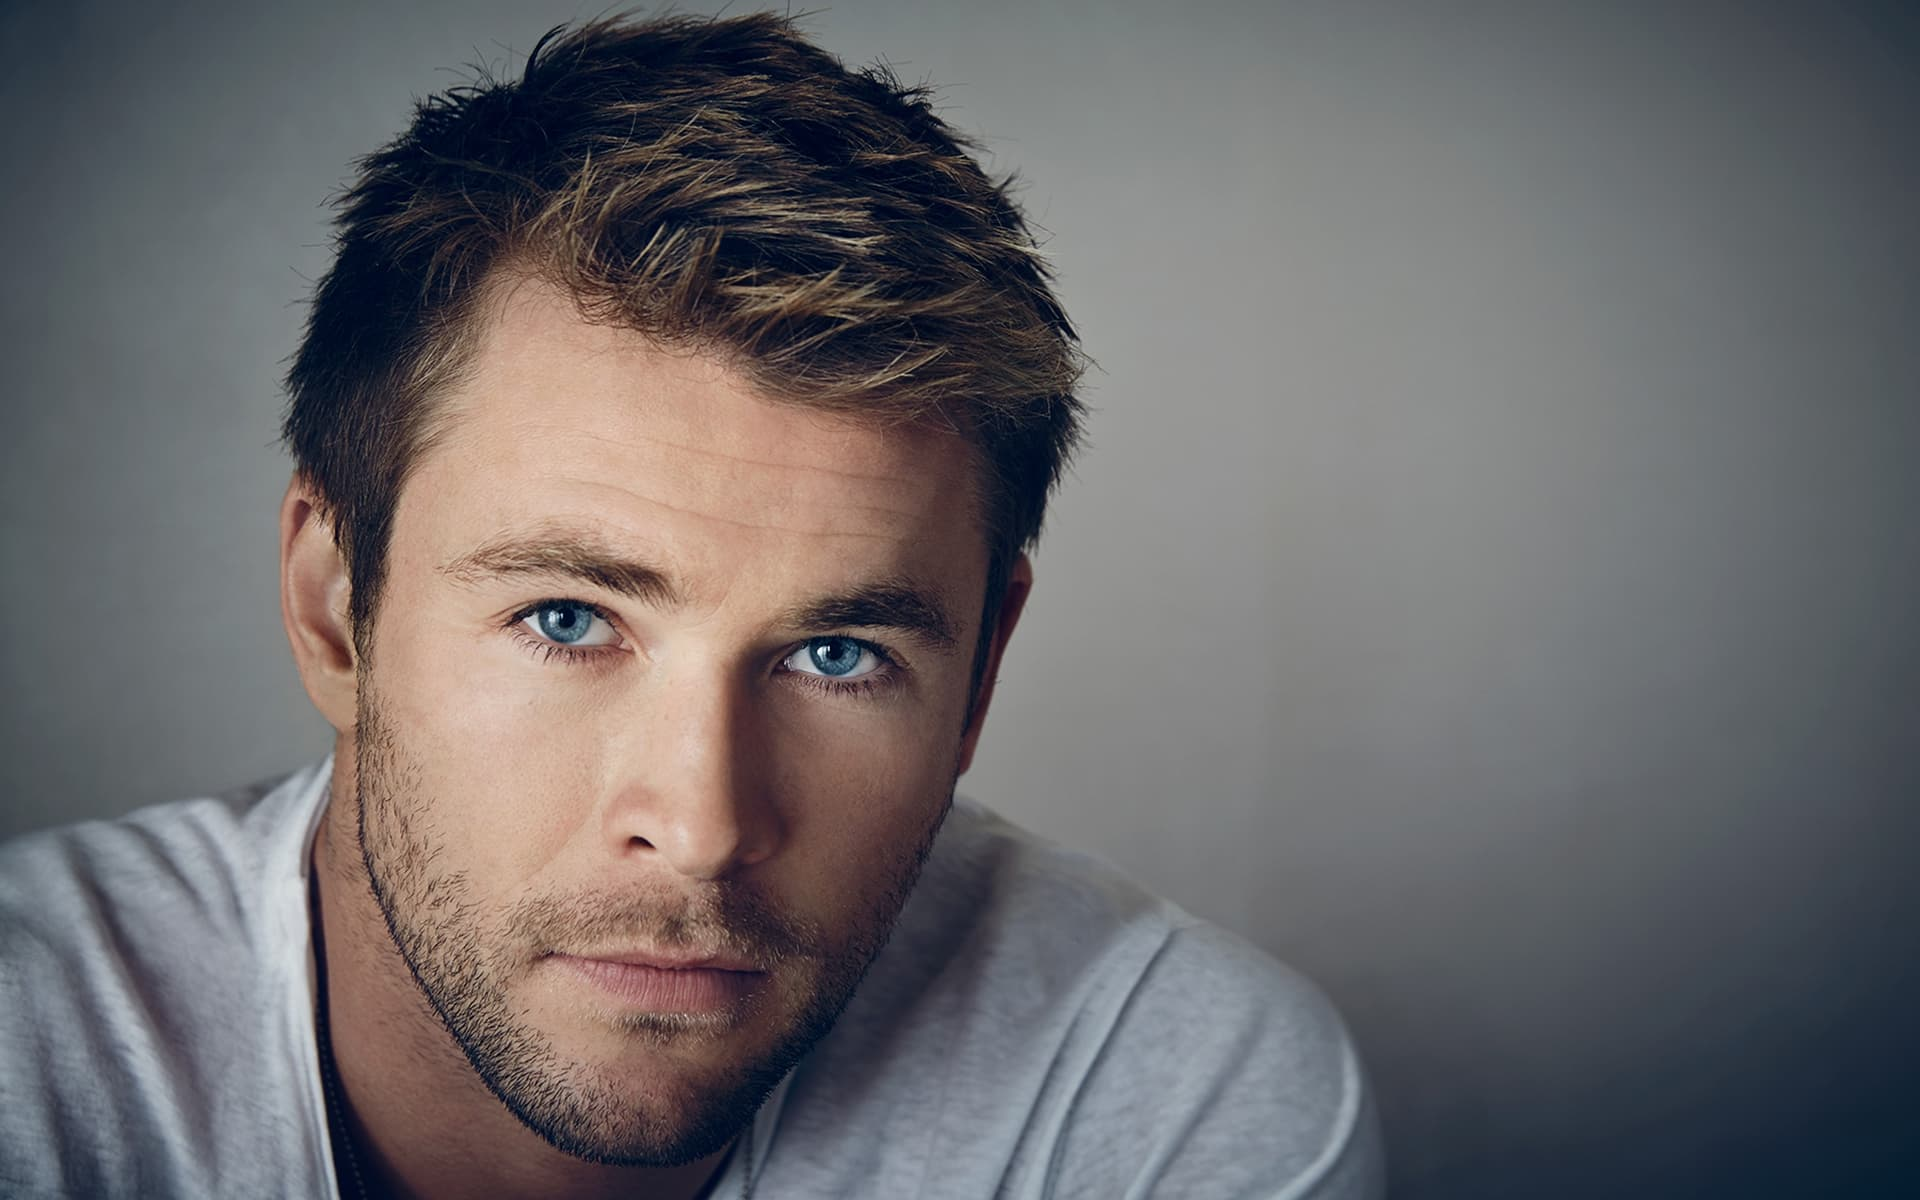 Wallpaper Chris Hemsworth blue eyes face hair 1920x1080p photo for Desktop